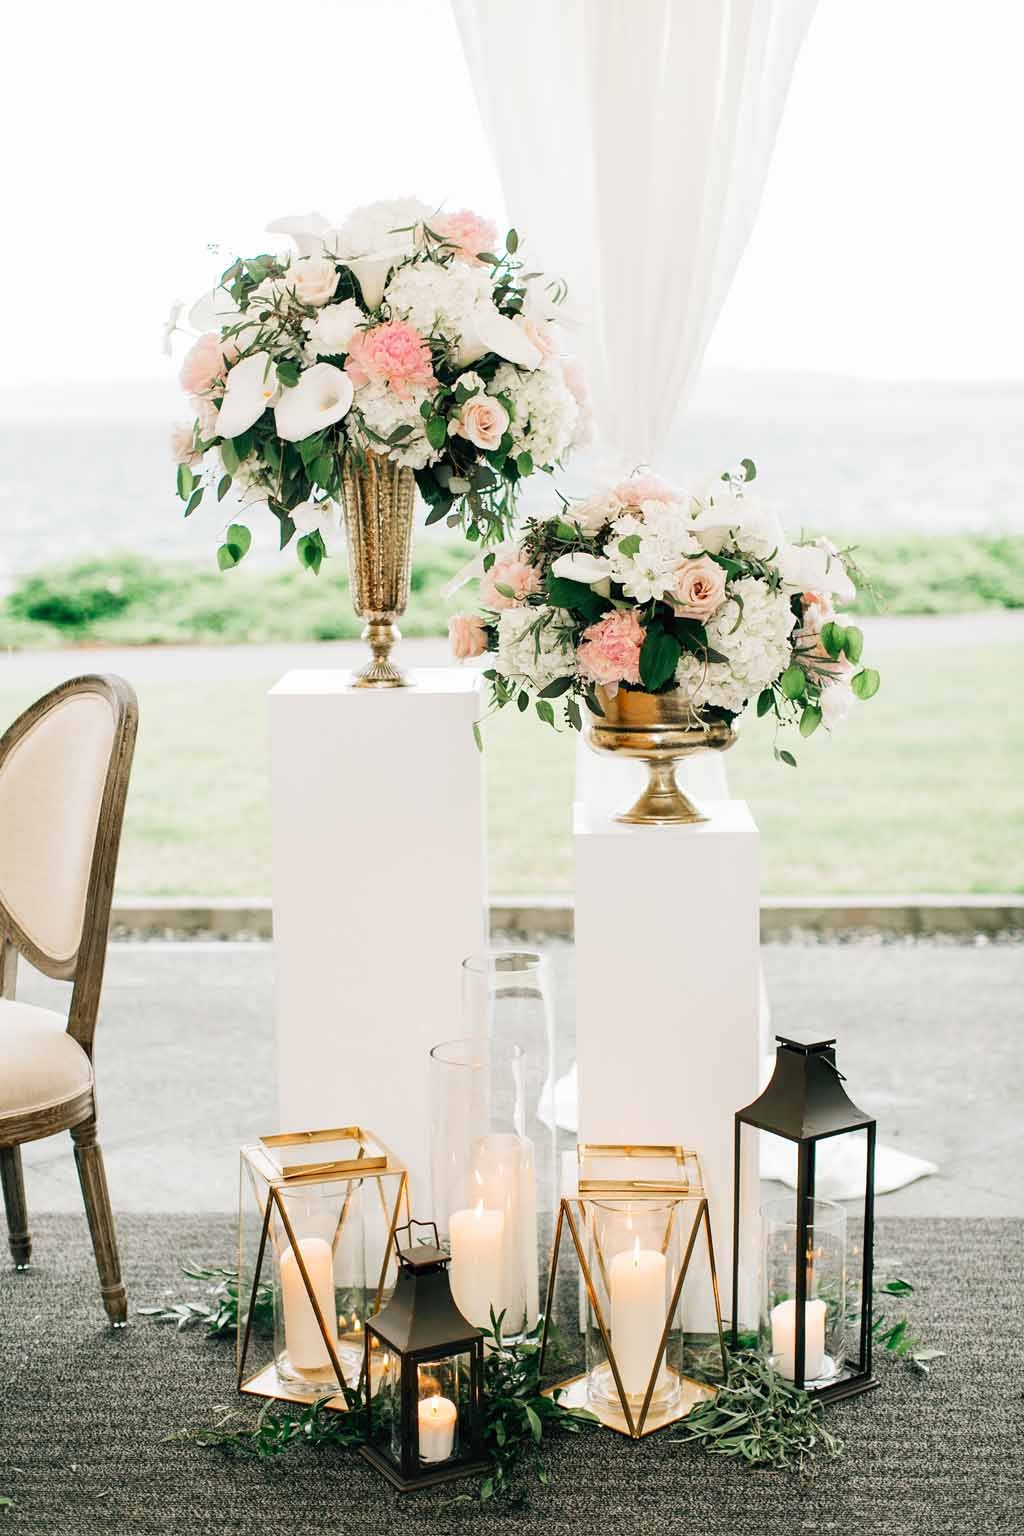 Sweetheart table with gorgeous backdrop of tall floral pieces looking over Lake Washington